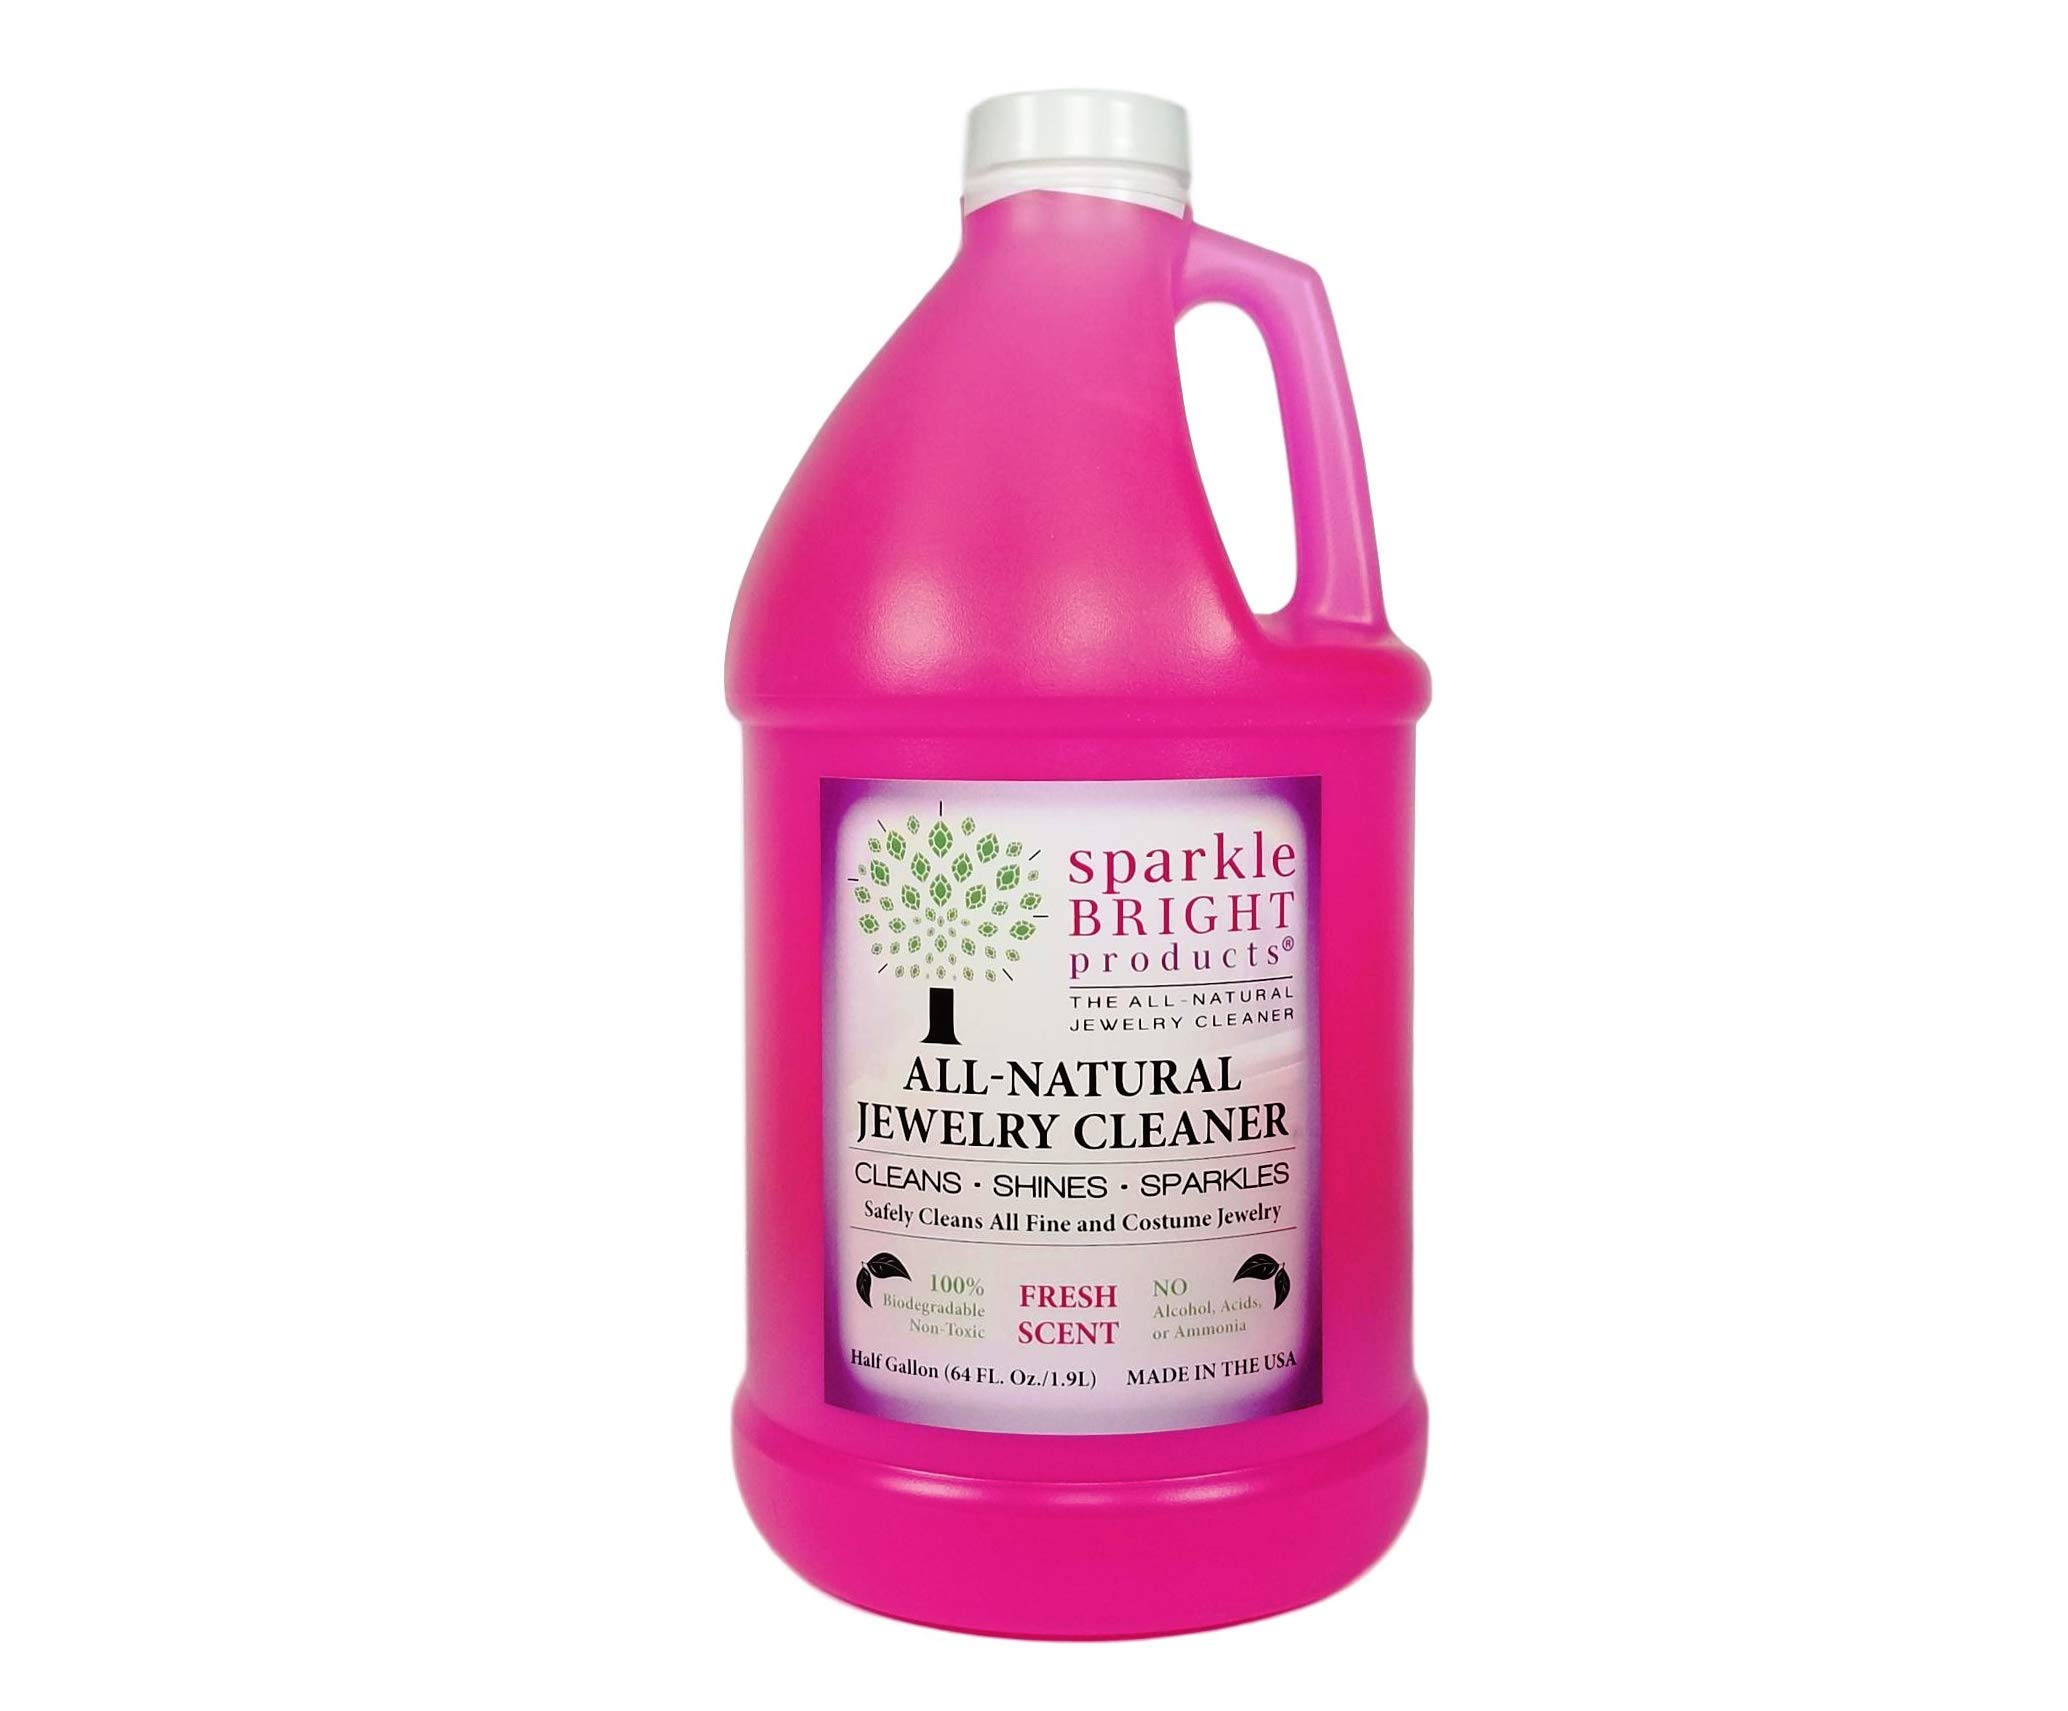 Sparkle Bright Products All-Natural Jewelry Cleaner | Liquid Jewelry Cleaning Solution, Half Gallon (64oz.) | Ultrasonics, Diamonds, Fine, Fashion, and Designer Jewelry